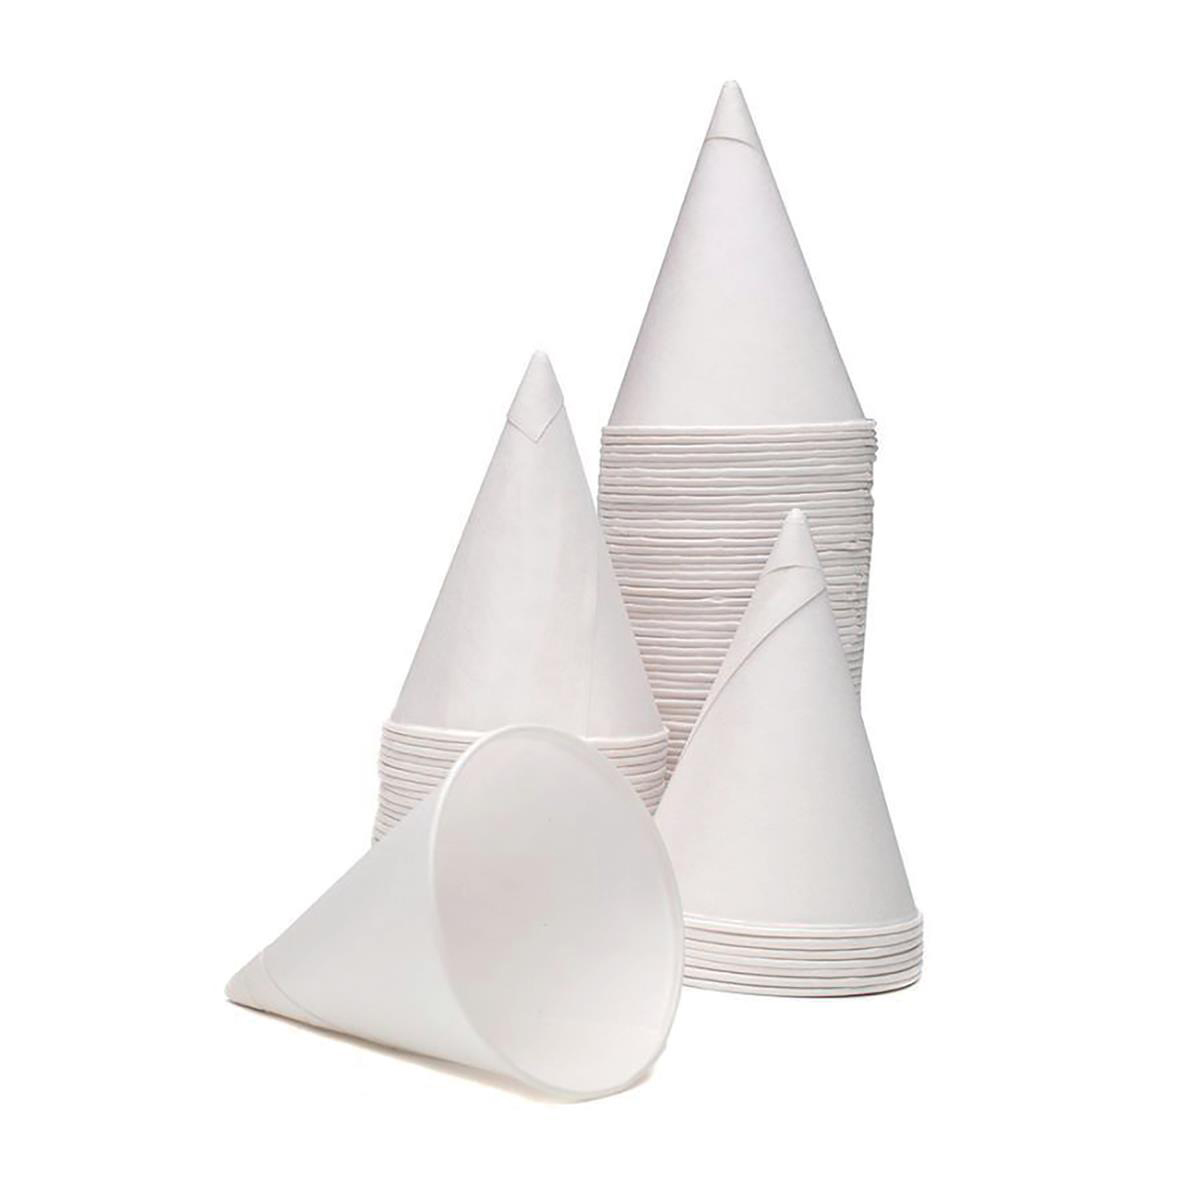 Disposable Cups & Accessories Water Cones Disposable 4oz 114ml White Ref ACPACC04 Pack 5000